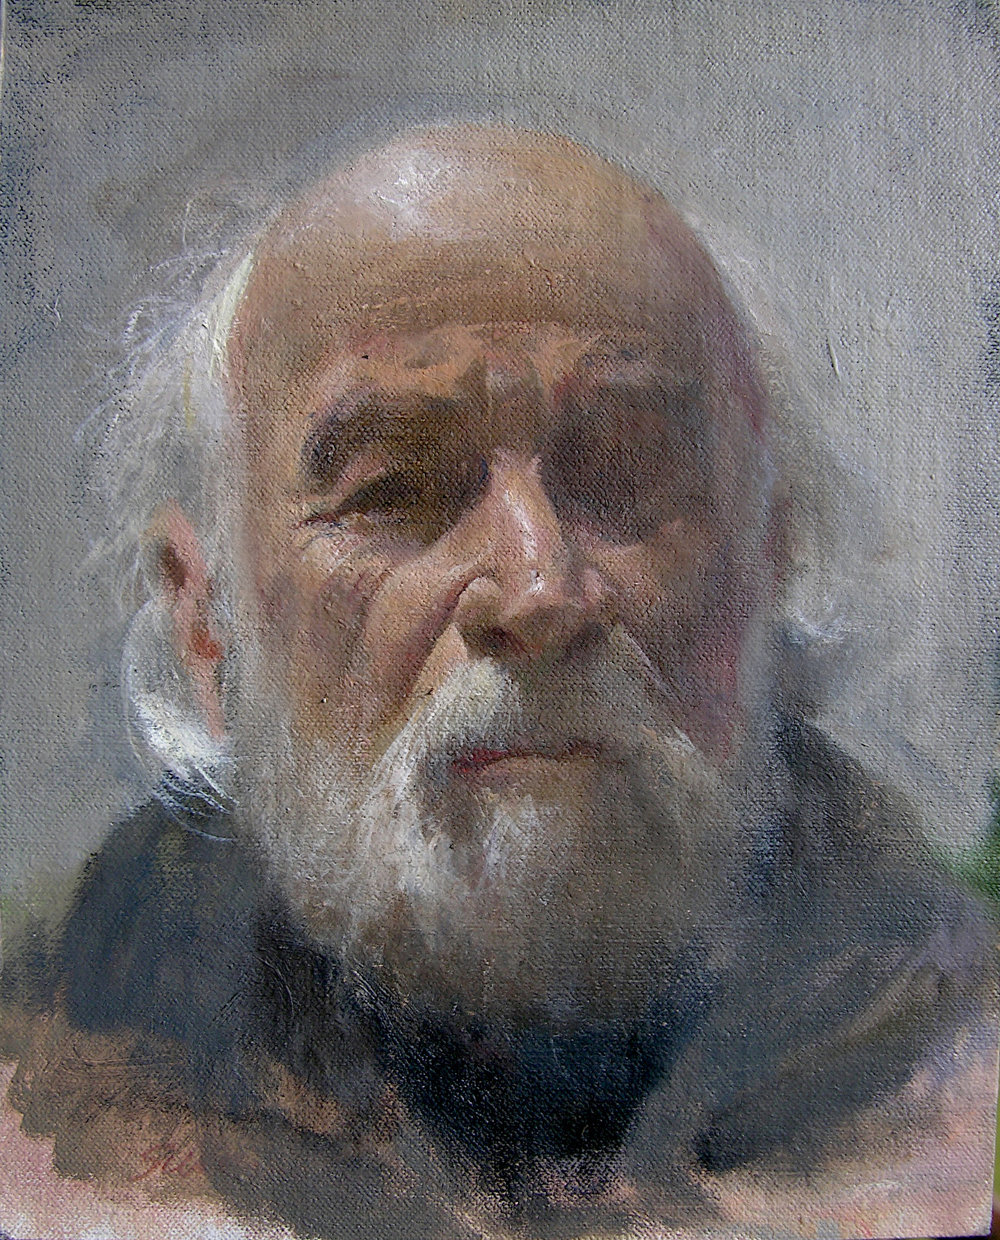 Study for a self portrait, 2018, oil :linen on wood, 12x10in.